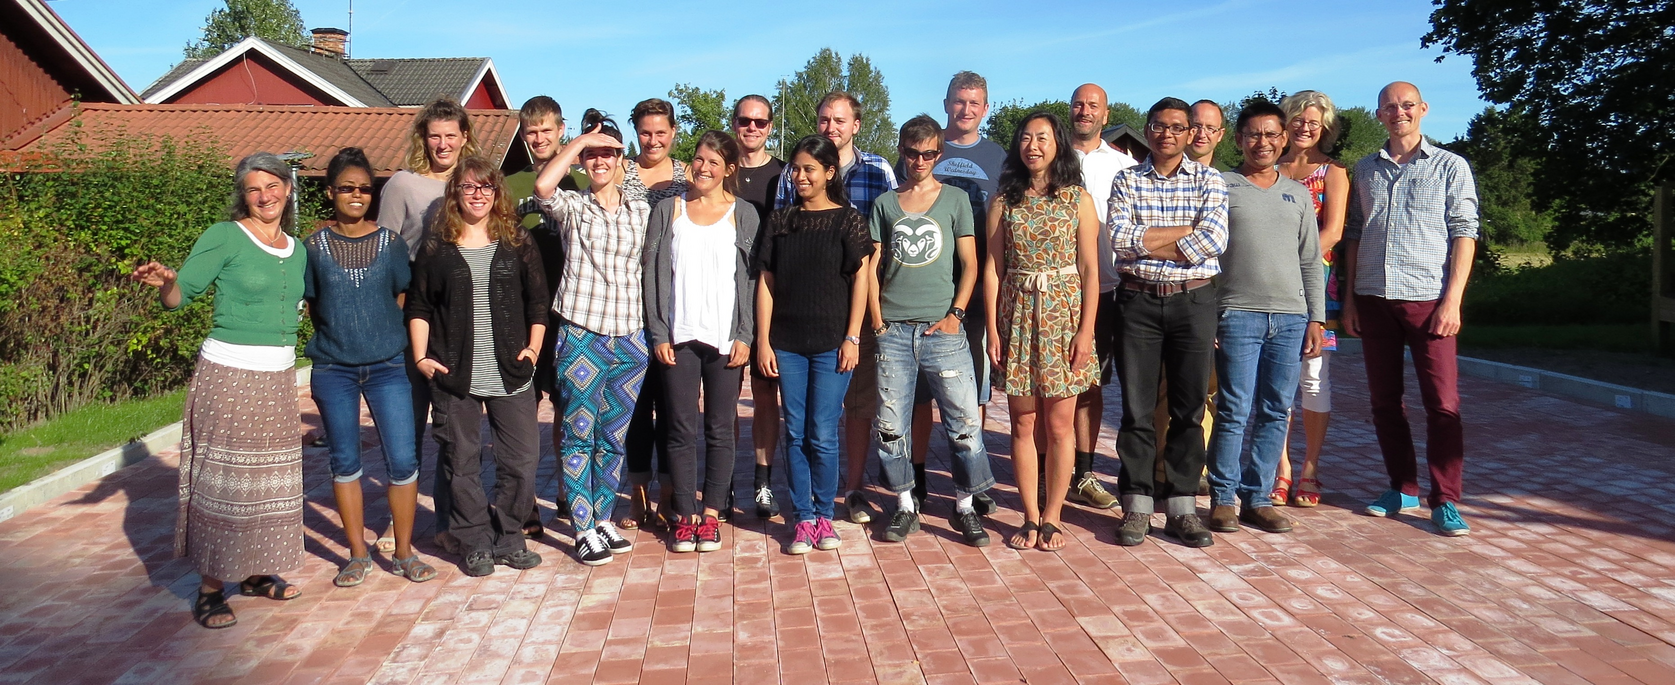 Participants of the 6th_SummerSchool